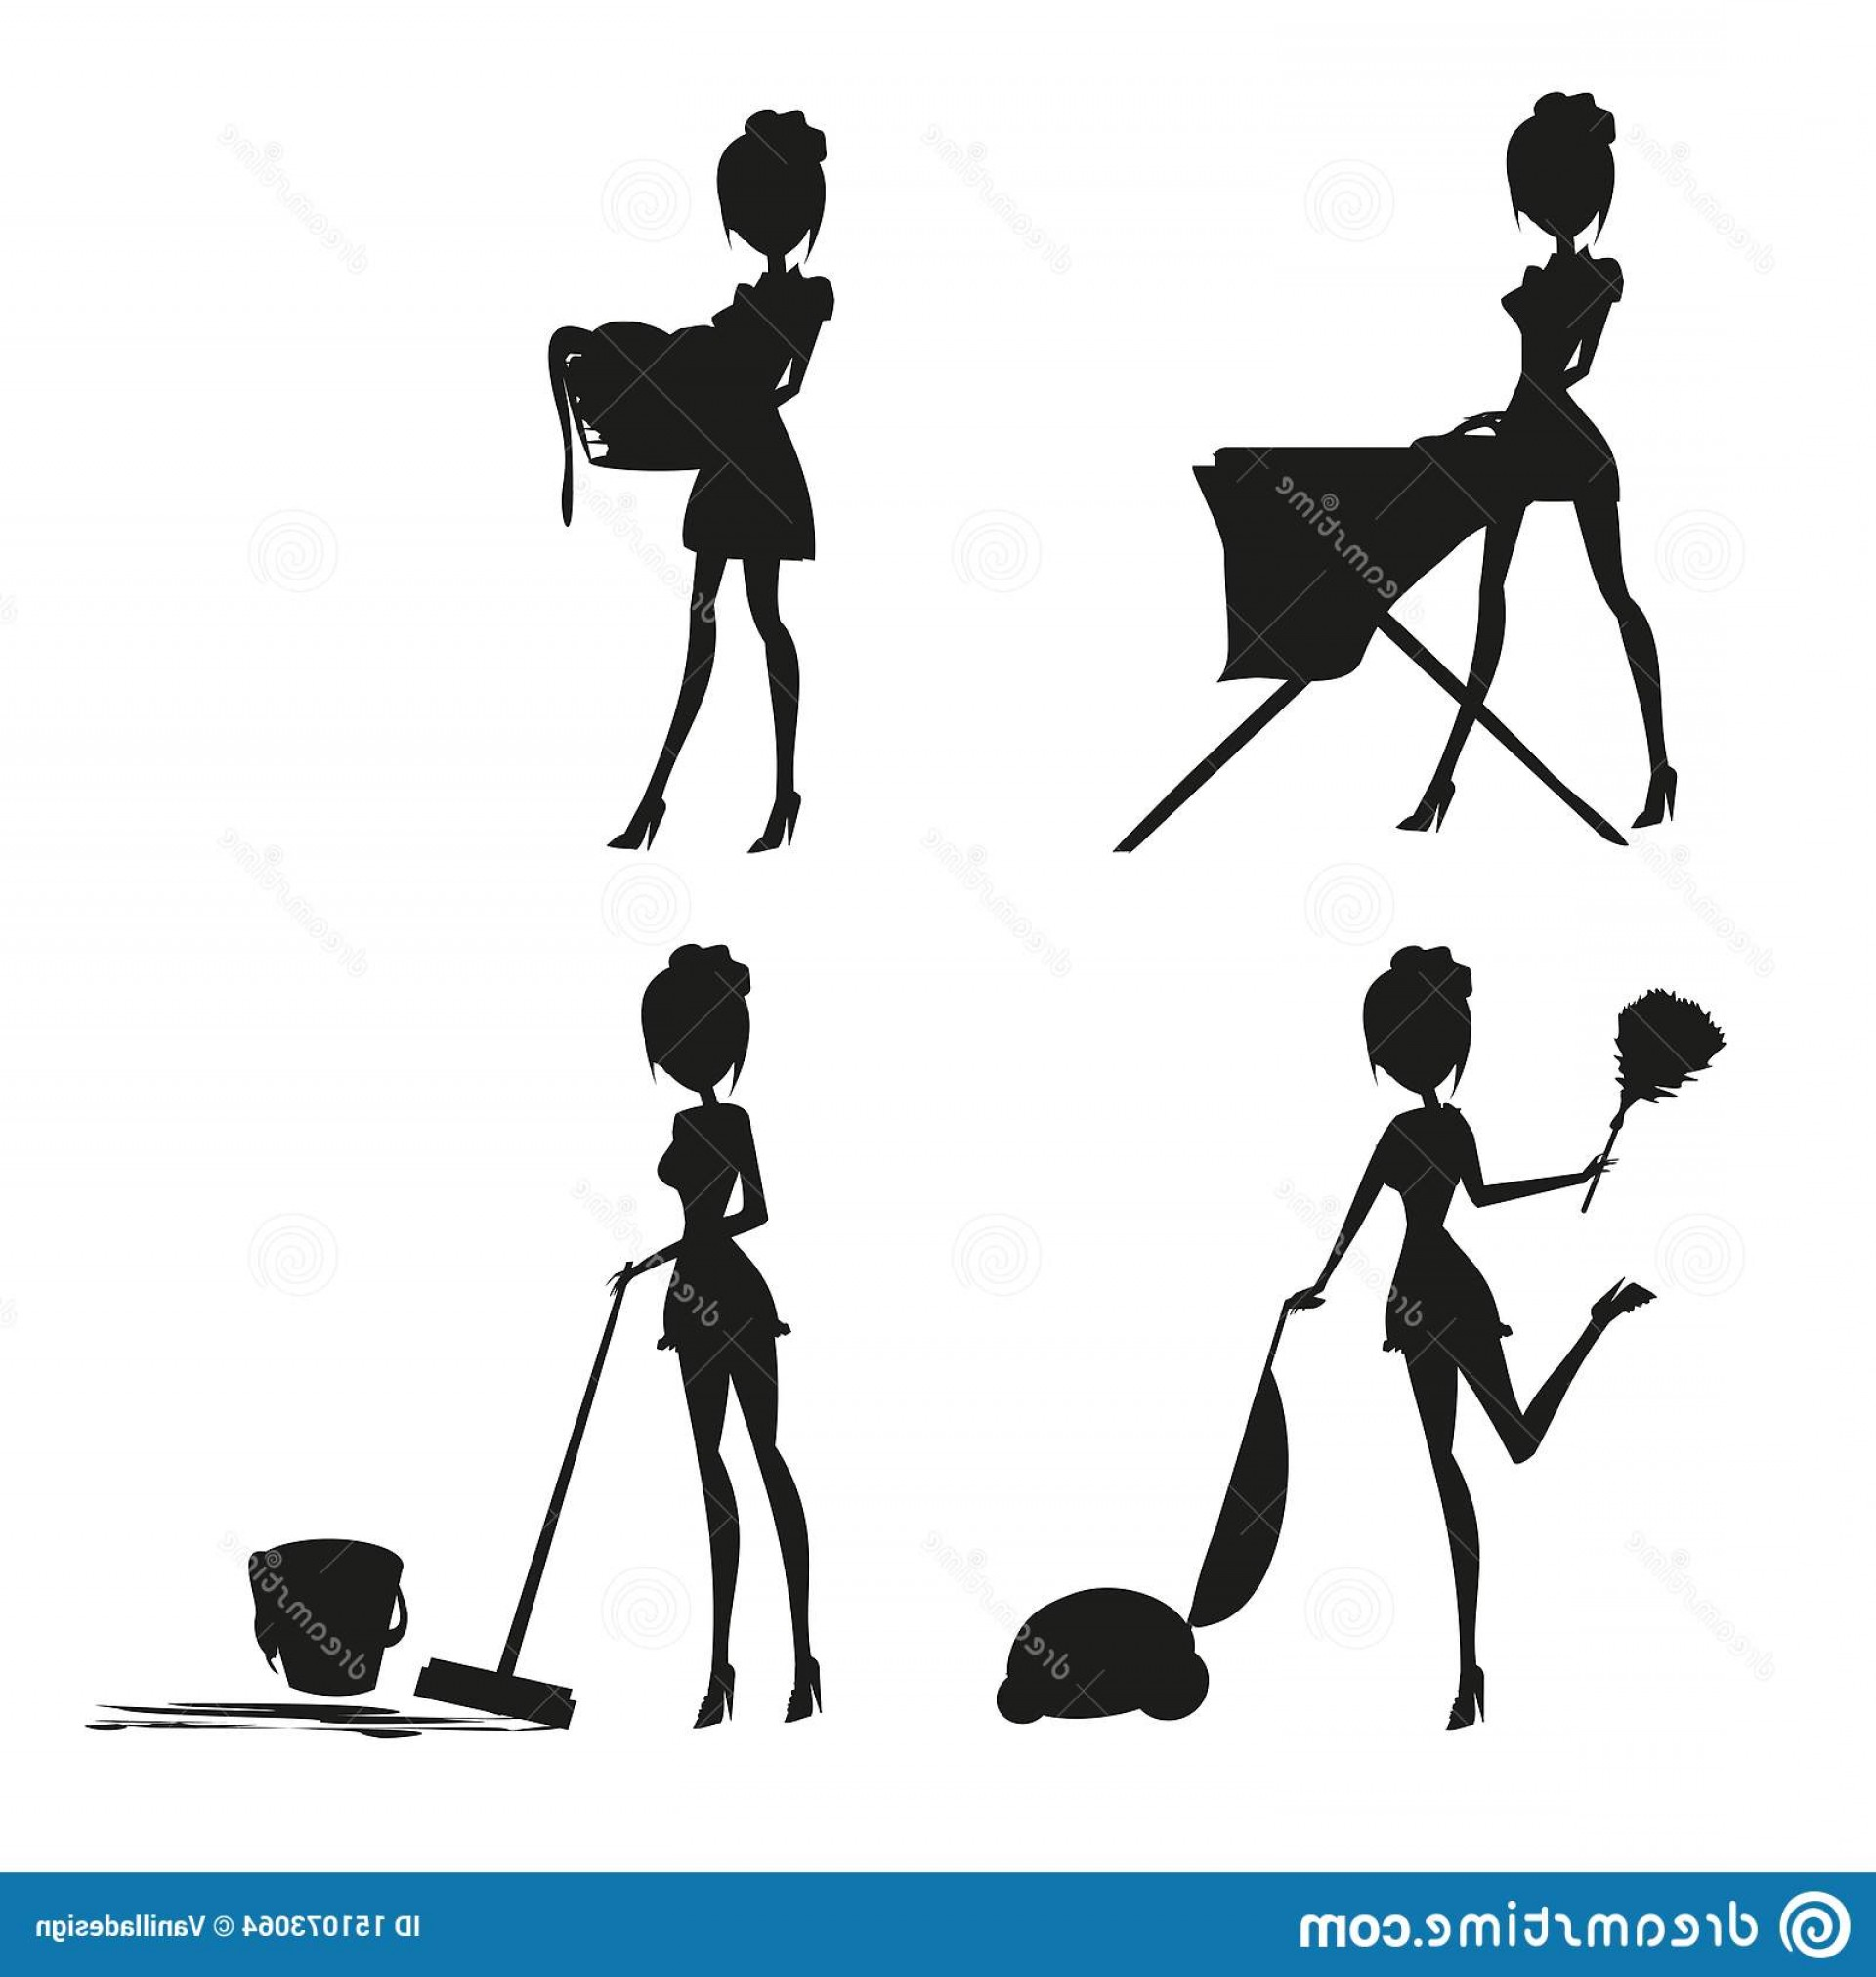 Sexy Silhouette Vector Art: Sexy Pinup Style French Maid Work Set Silhouette Vector Illustration Image